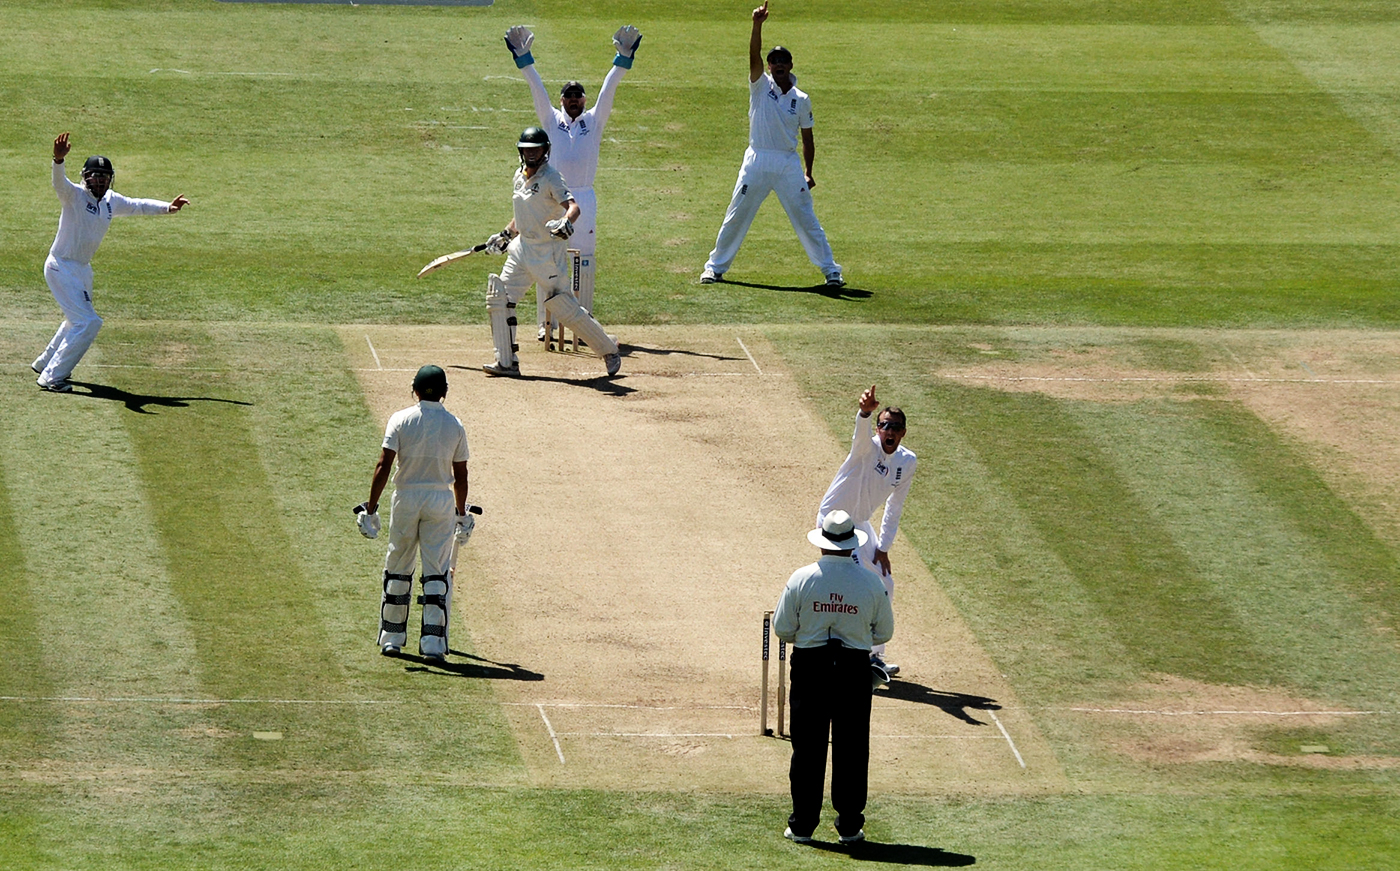 Chris Rogers was given lbw off a Graeme Swann full toss